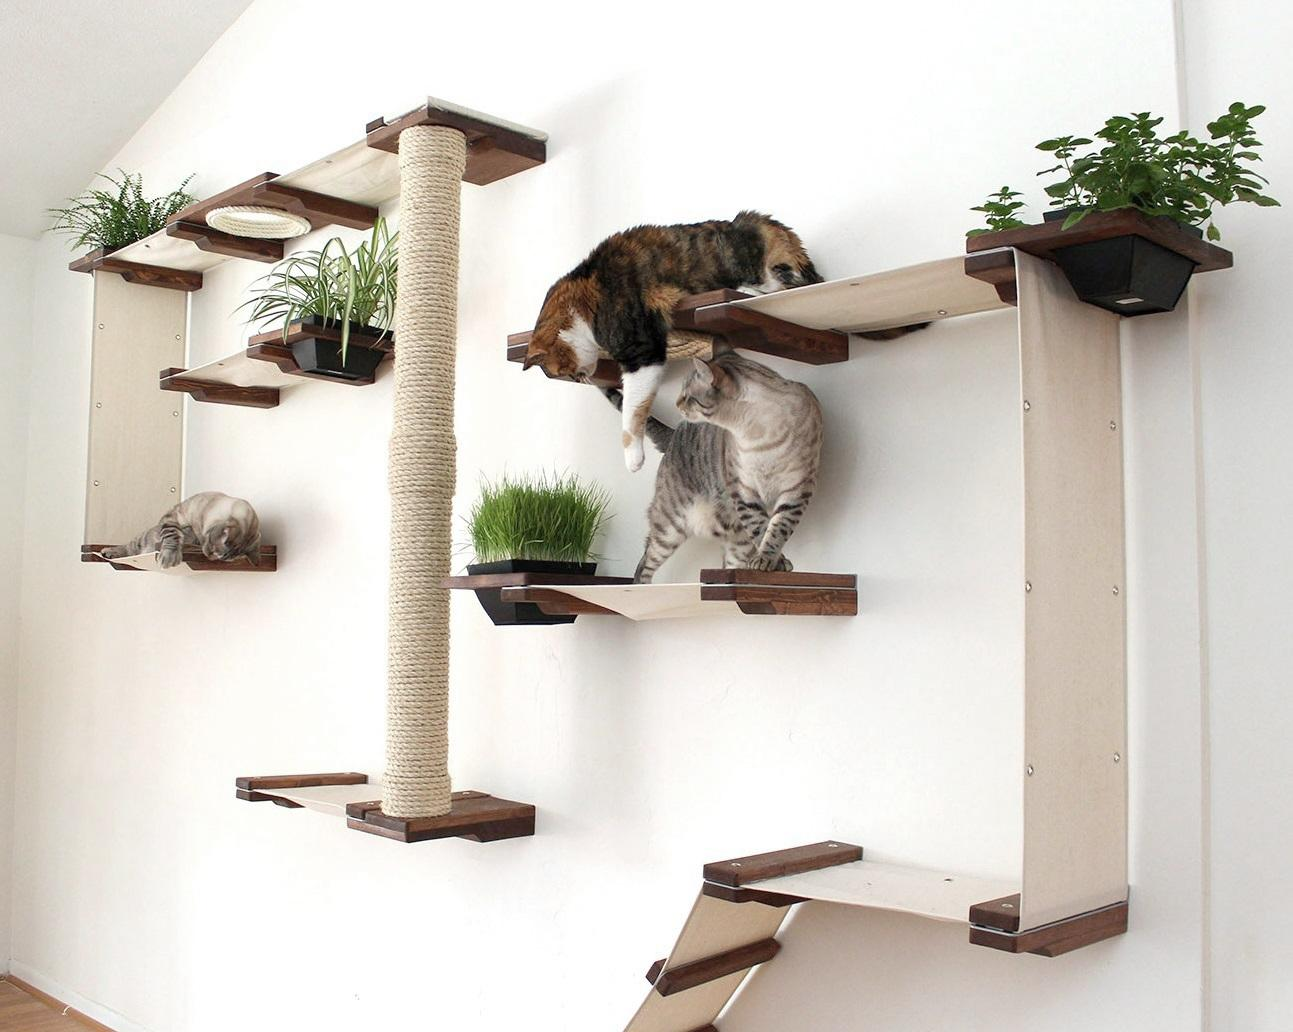 Amazon.com : CatastrophiCreations Cat Mod Garden Complex Handcrafted Wall Mounted Cat Tree